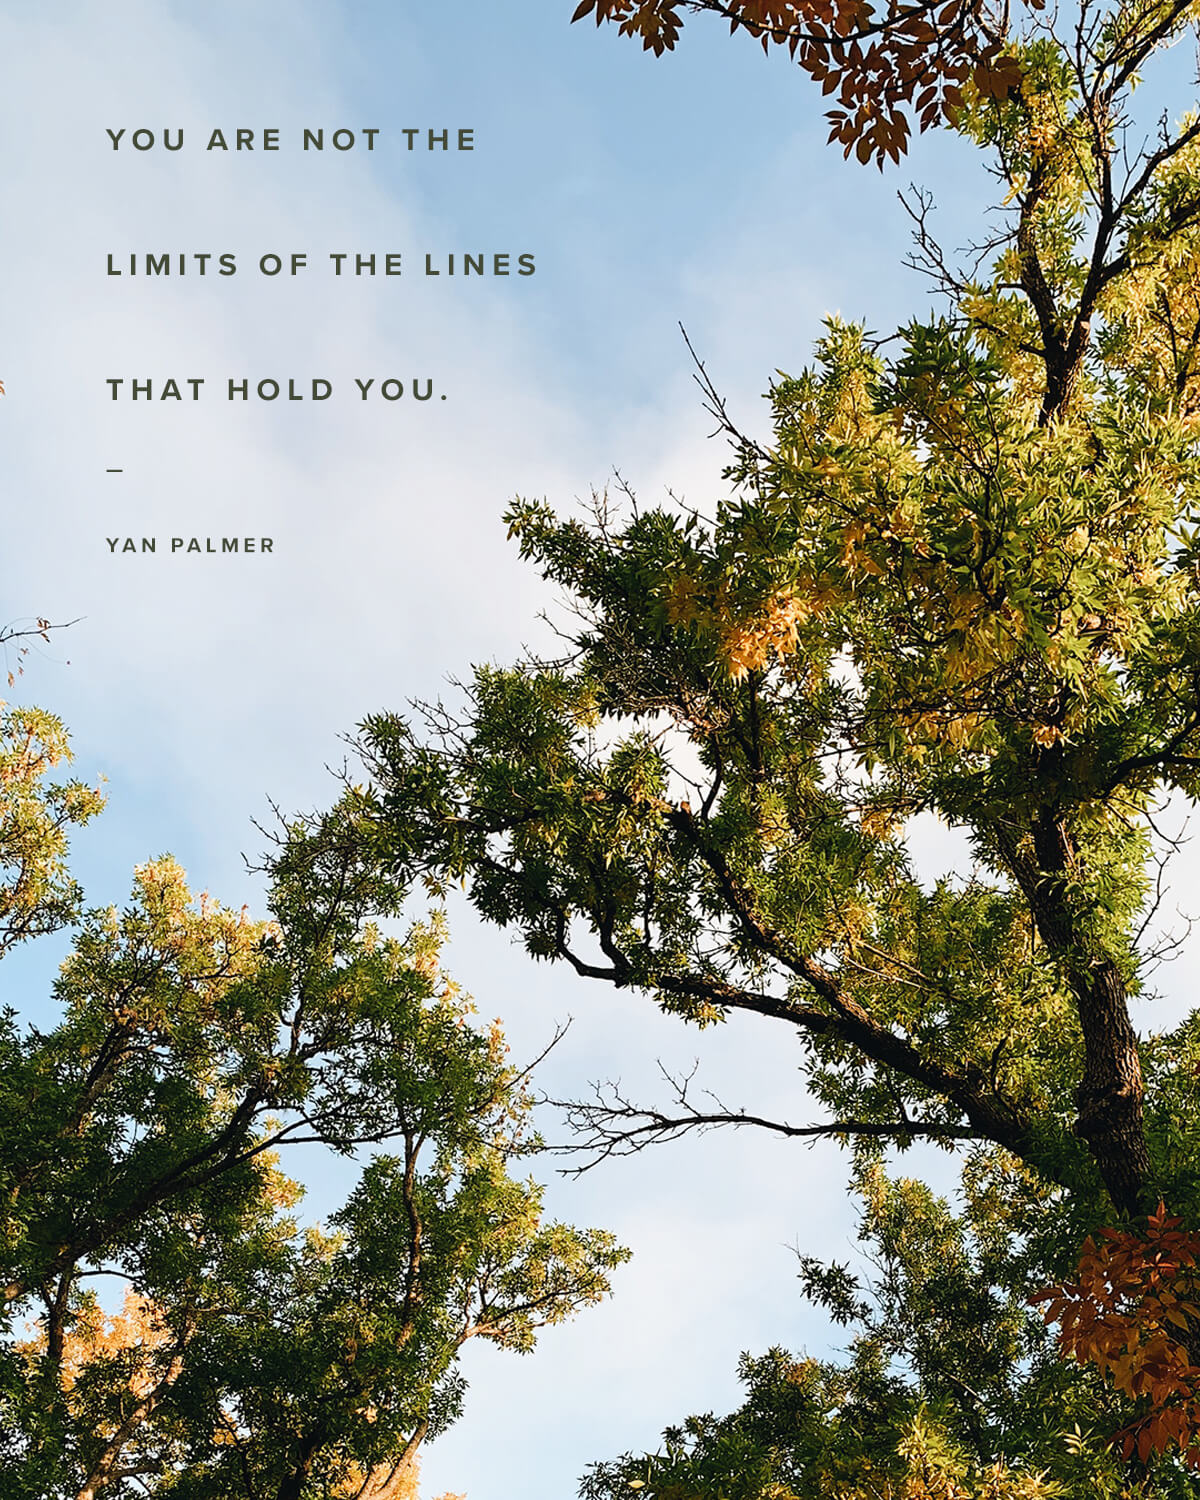 You are not the limits of the lines that hold you